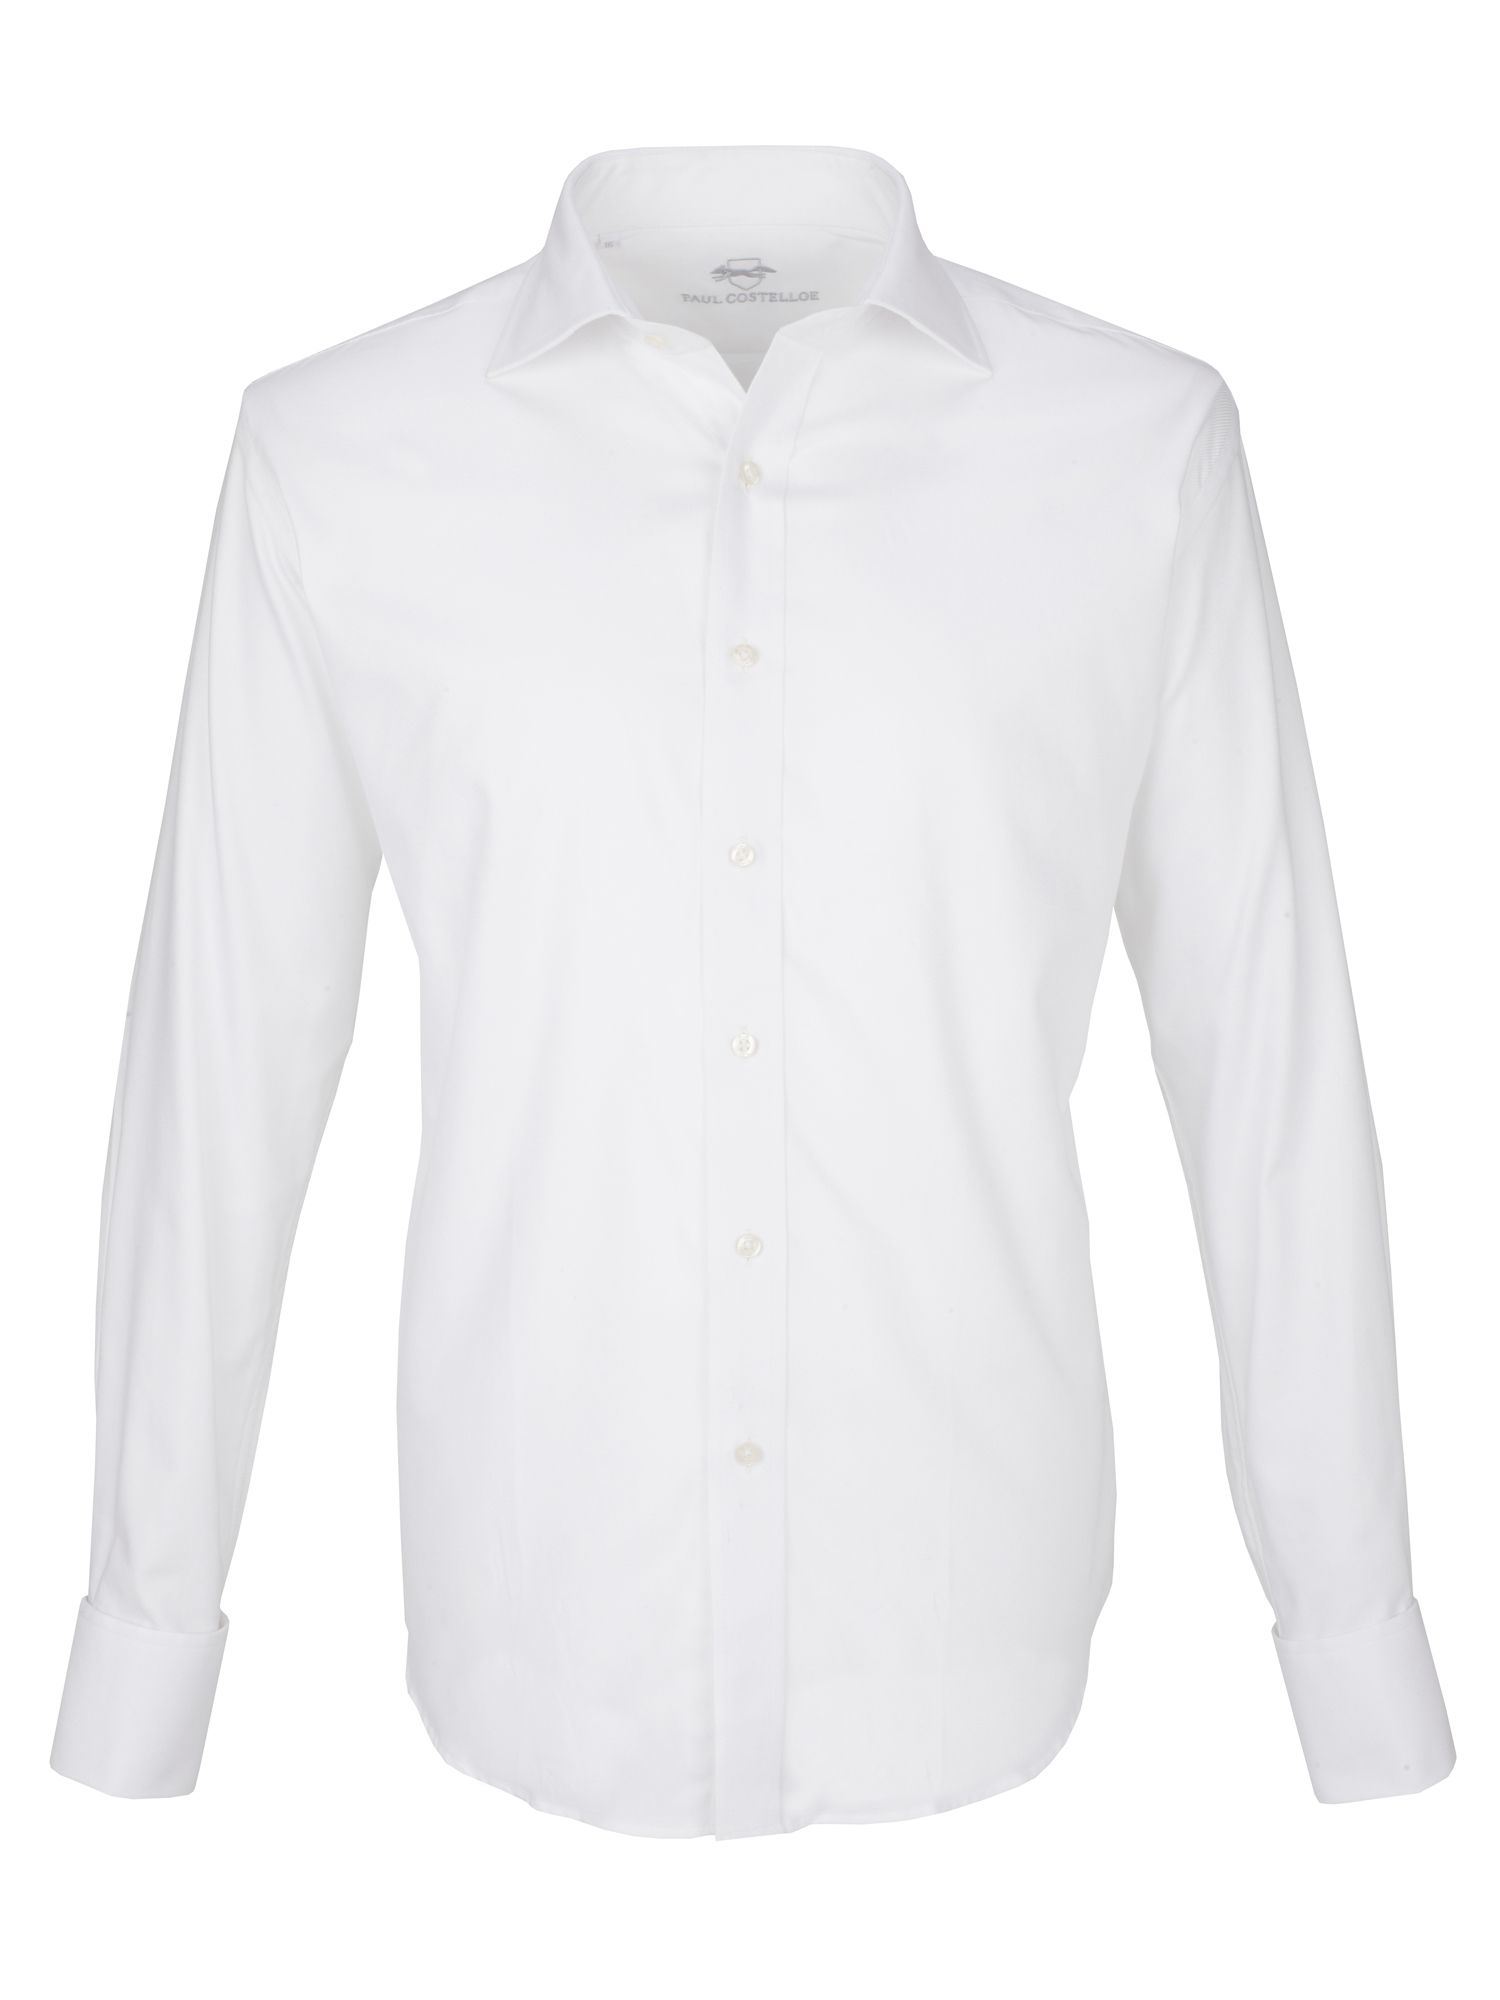 White twill double cuff shirt